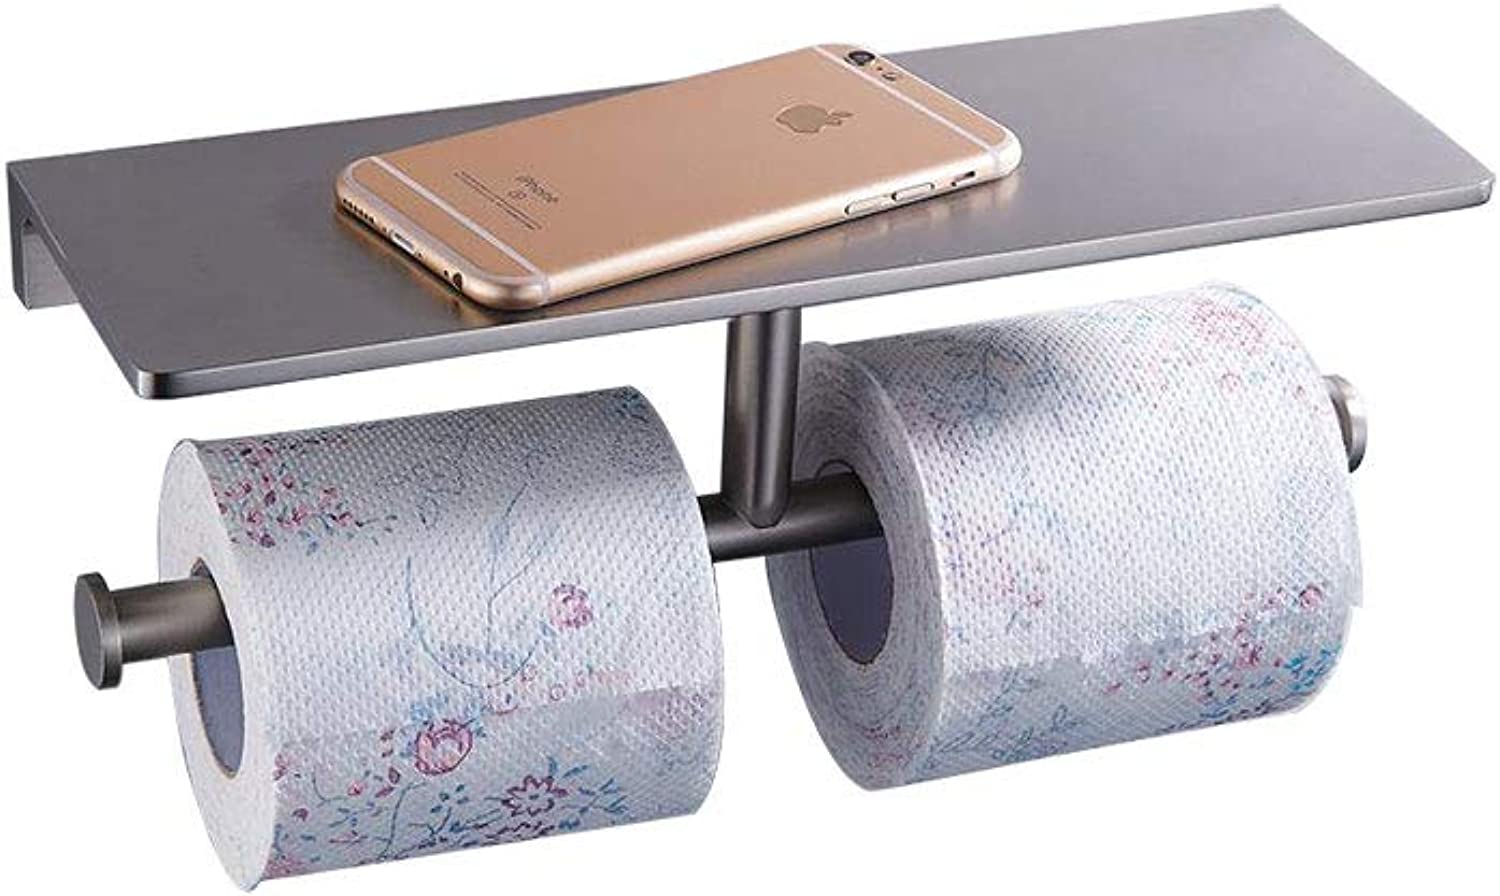 SANLIV Wall Mounted Double Roll Holder Paper Towel Dispenser for Kitchen, Bathroom, Laundry Room, Office with Heavy Brass Storage Rack Shelf in Brushed Nickel